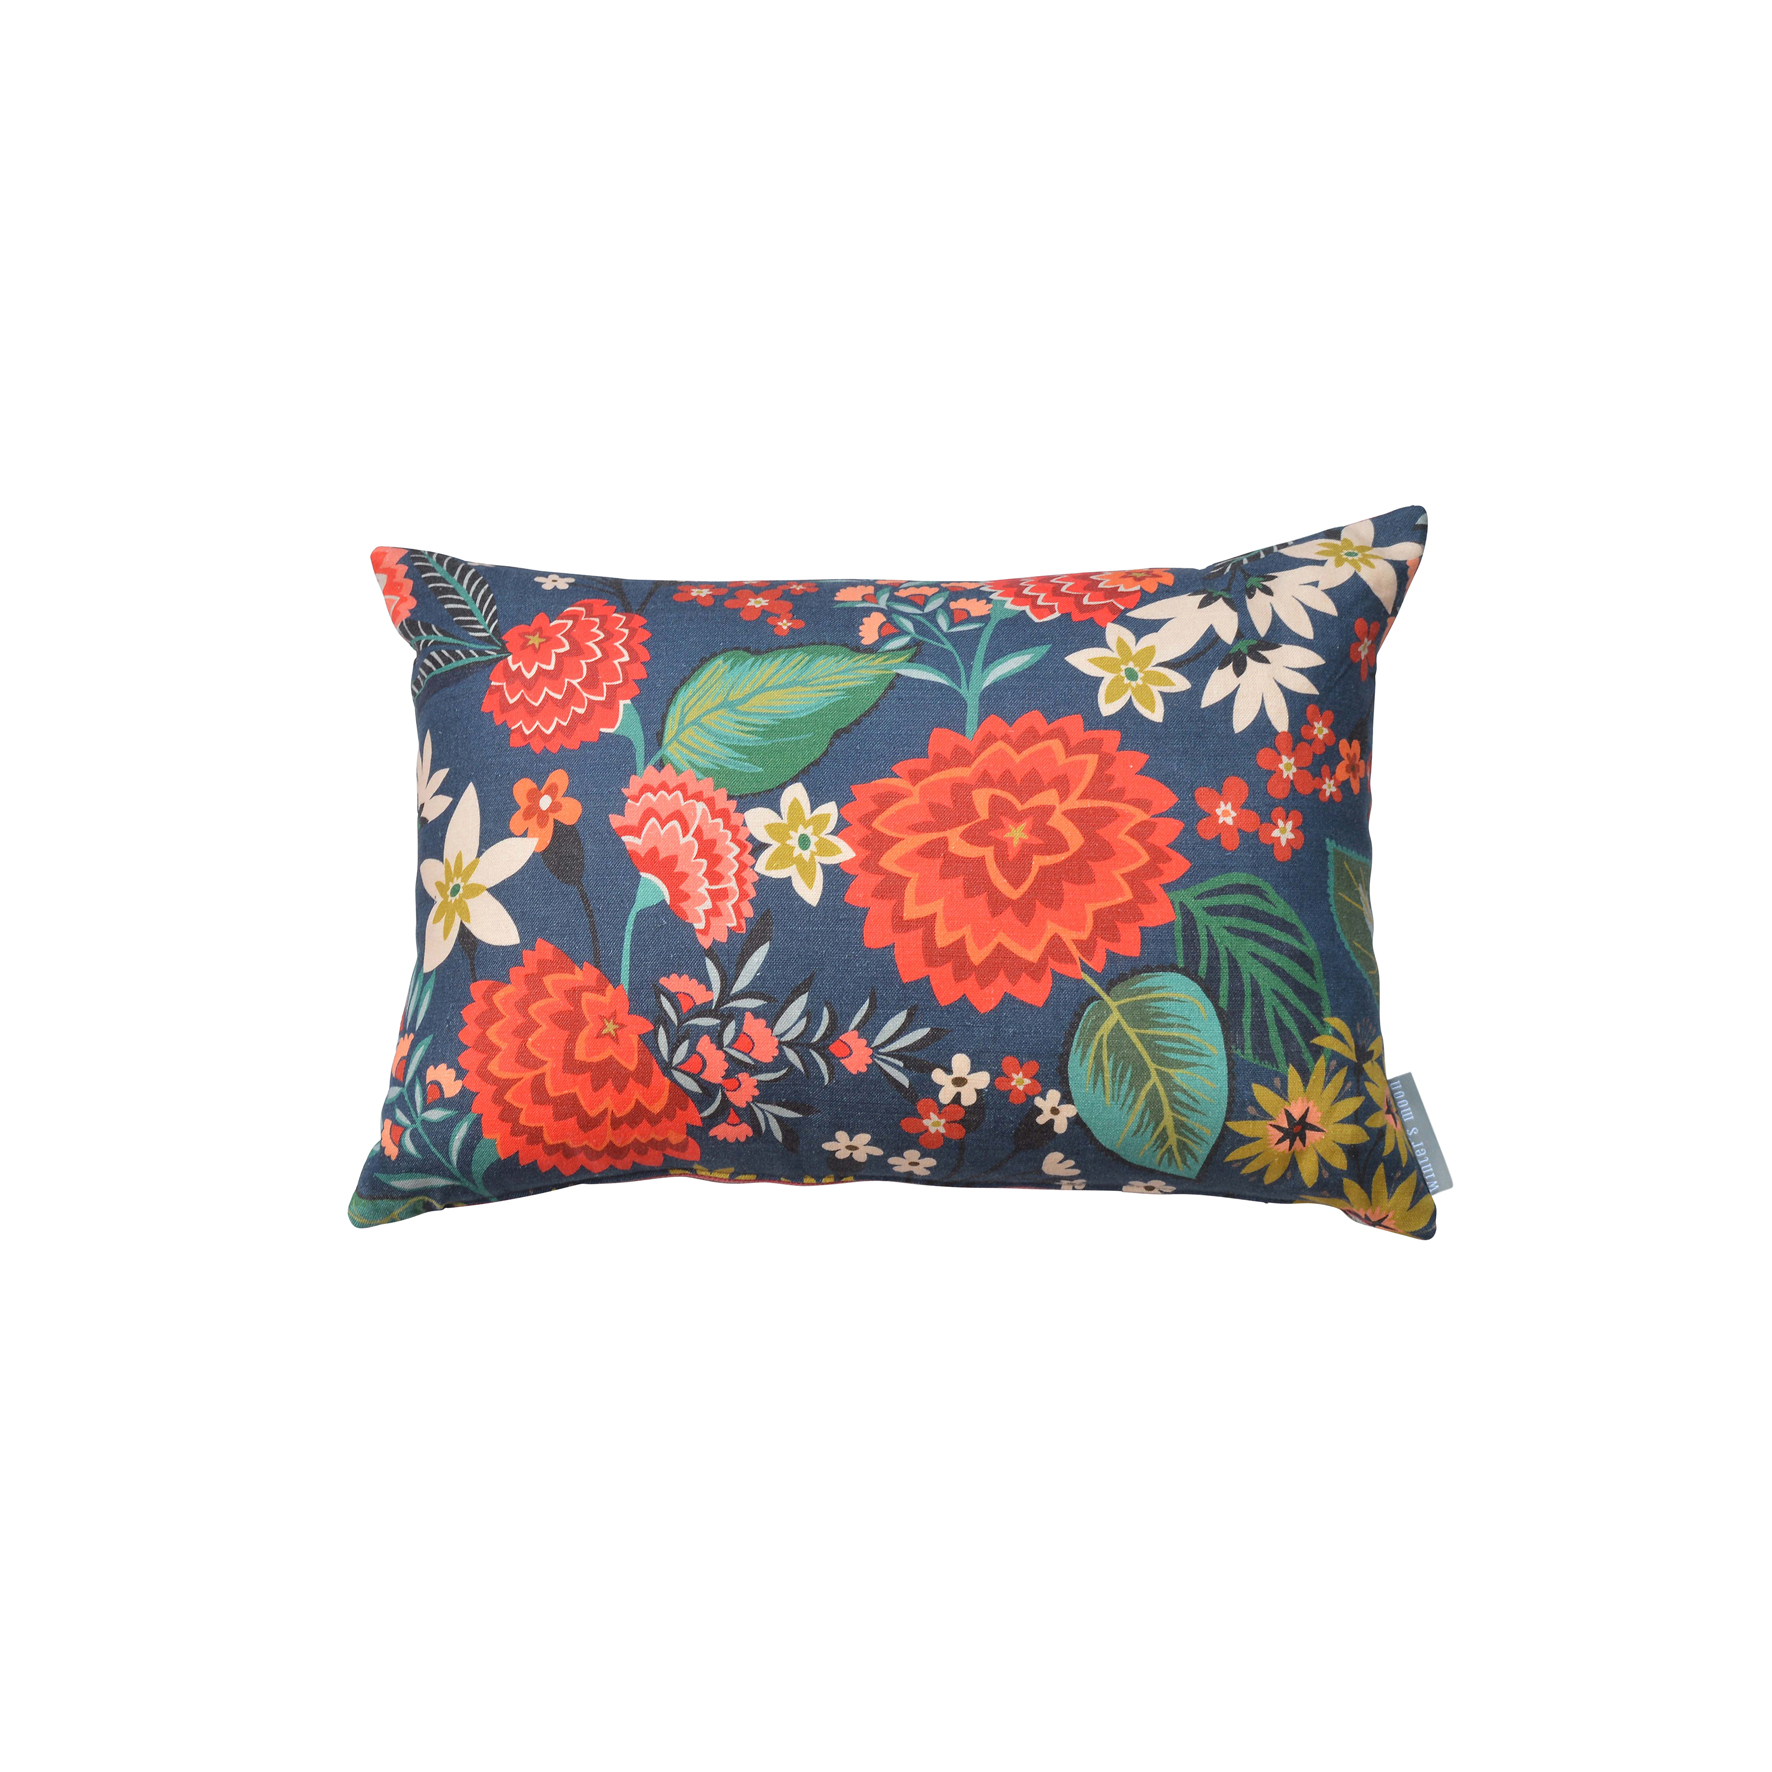 Carnation Fabric Cushion for  Winter's Moon    © Brie Harrison 2015